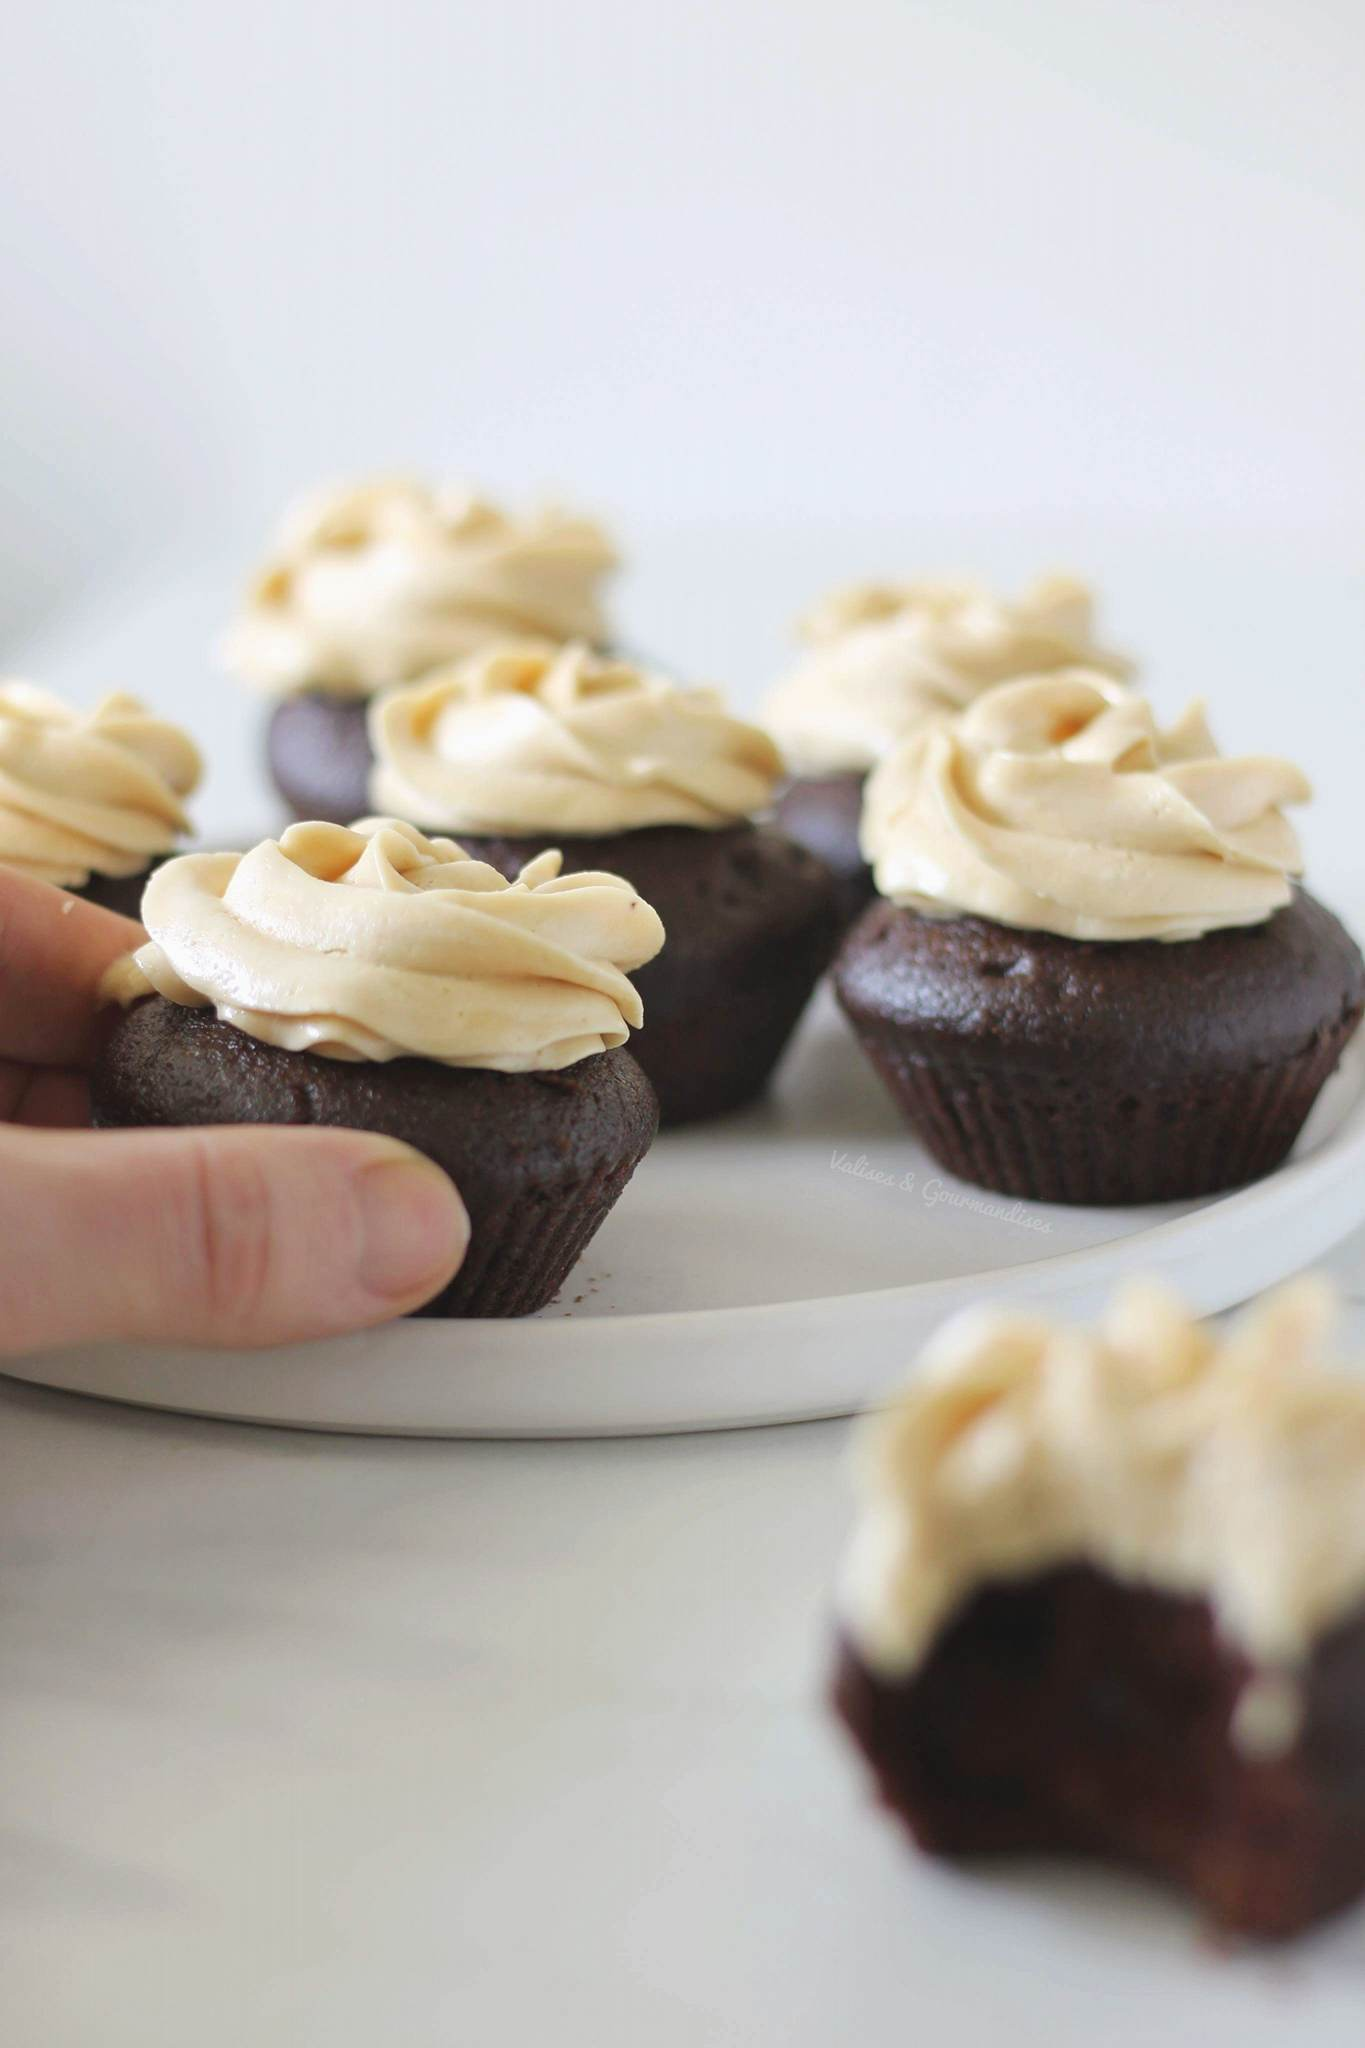 Vegan chocolate cupcakes with a peanut butter icing